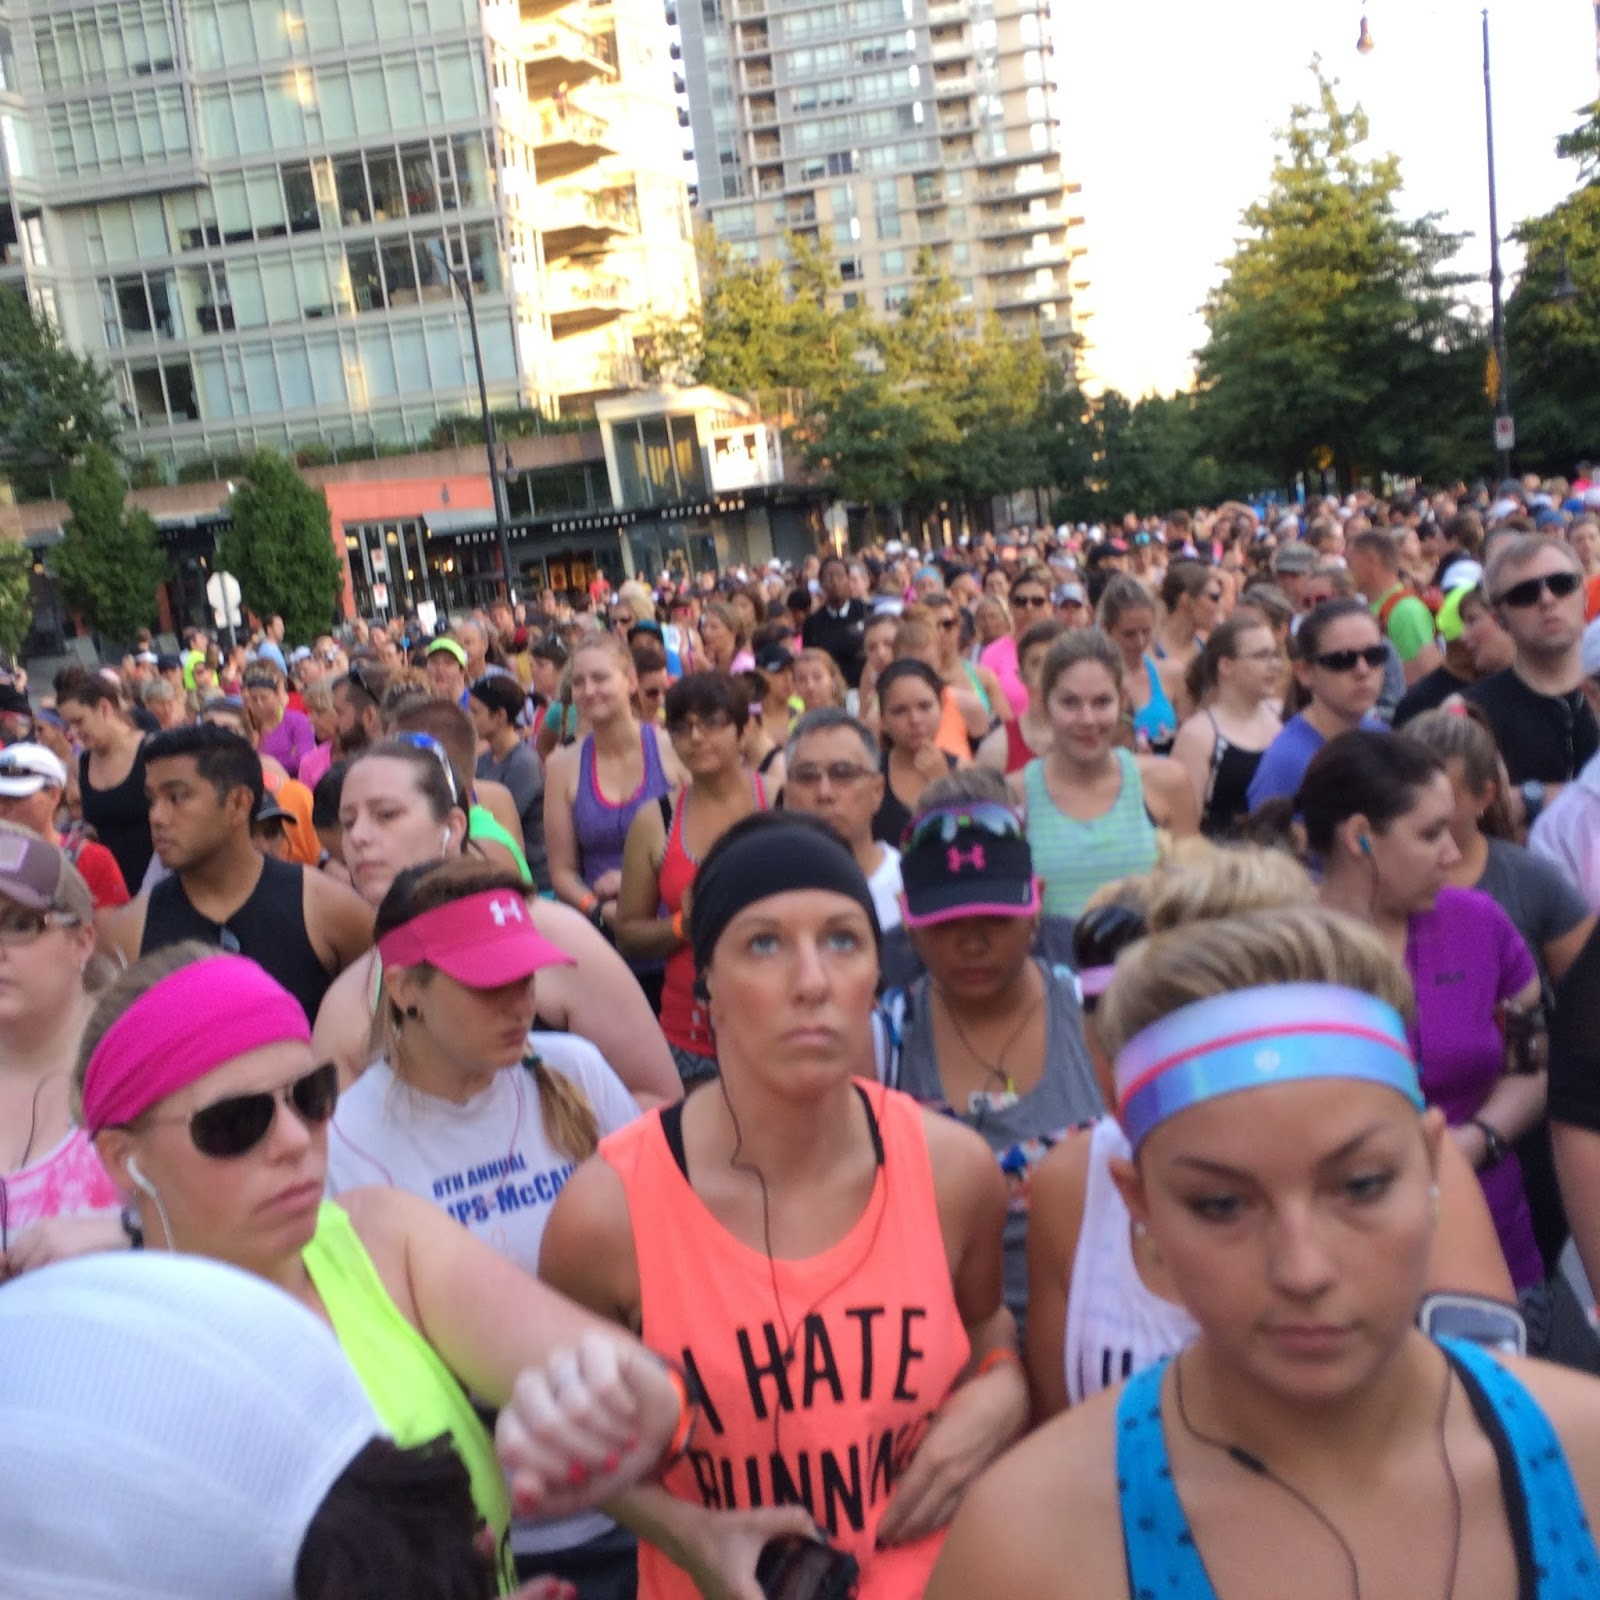 lululemon Sea Wheeze start corral